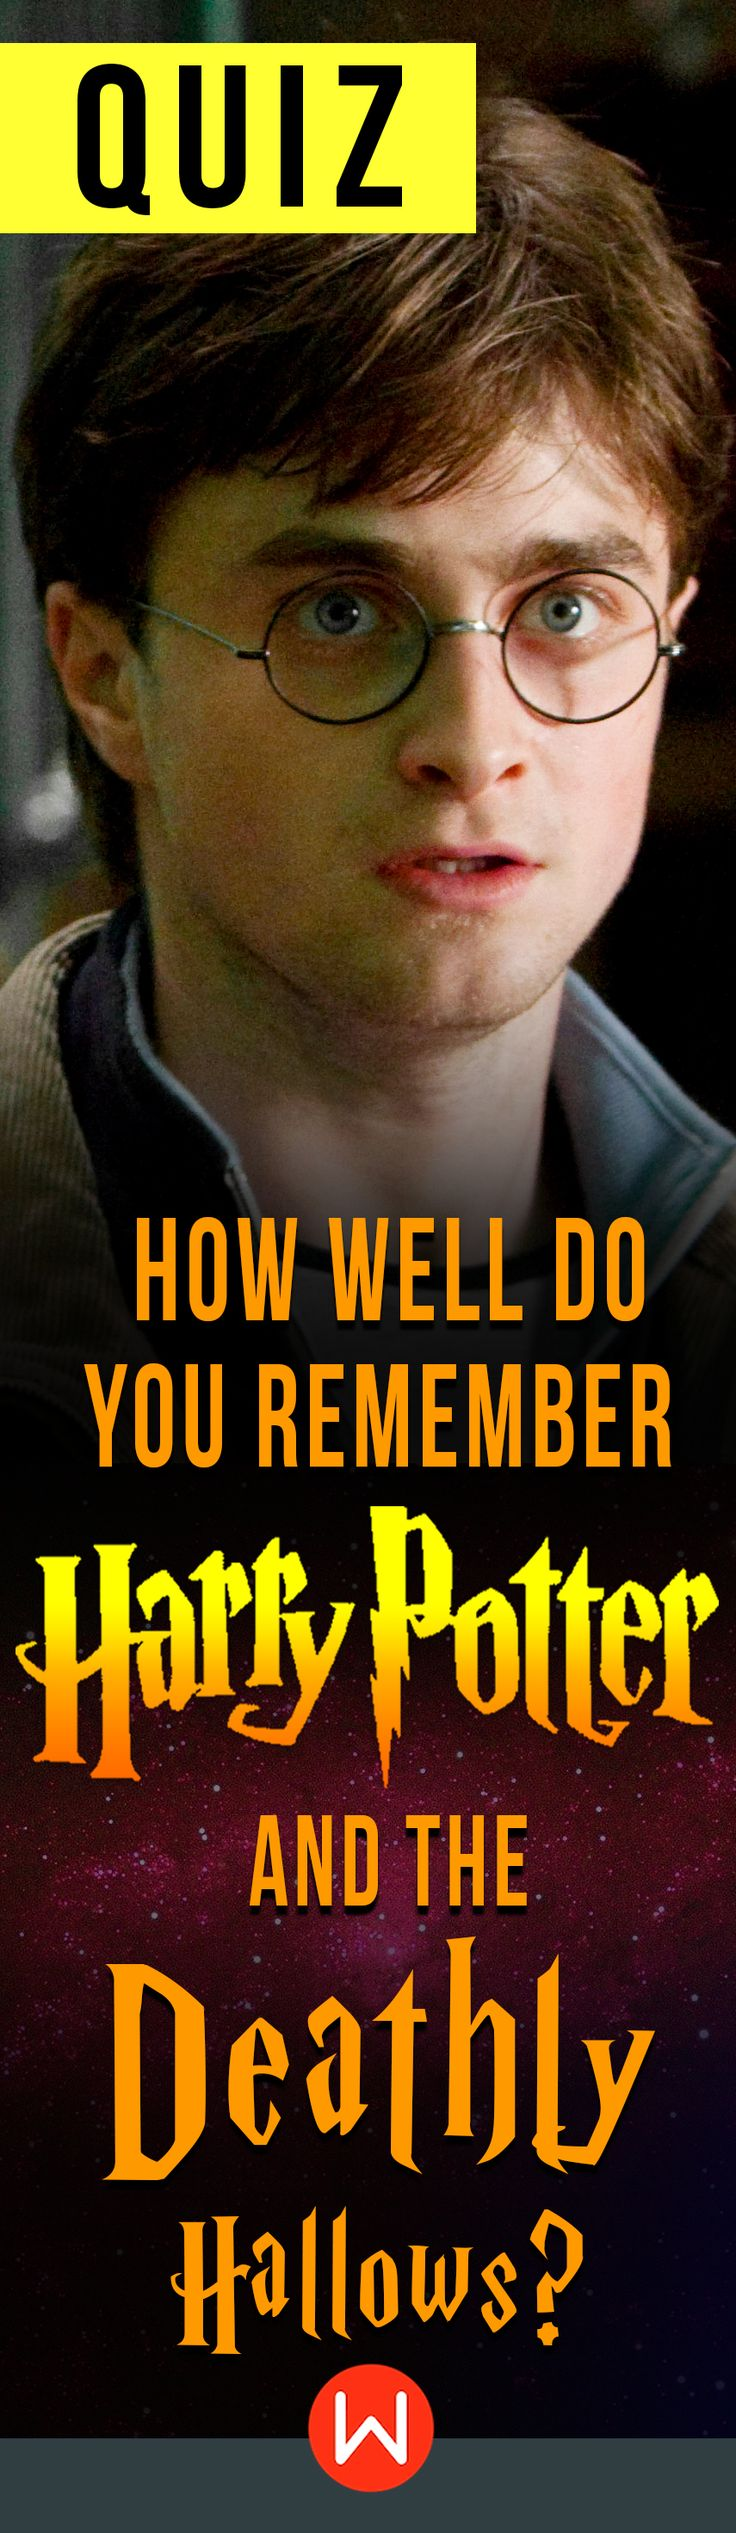 Do you dare? Harry Potter and the Deathly Hallows trivia. How much do you REALLY remember HP and the Deathly Hallows? Test yourself on this HP quiz. ONLY real fans will ace this test. Will you?